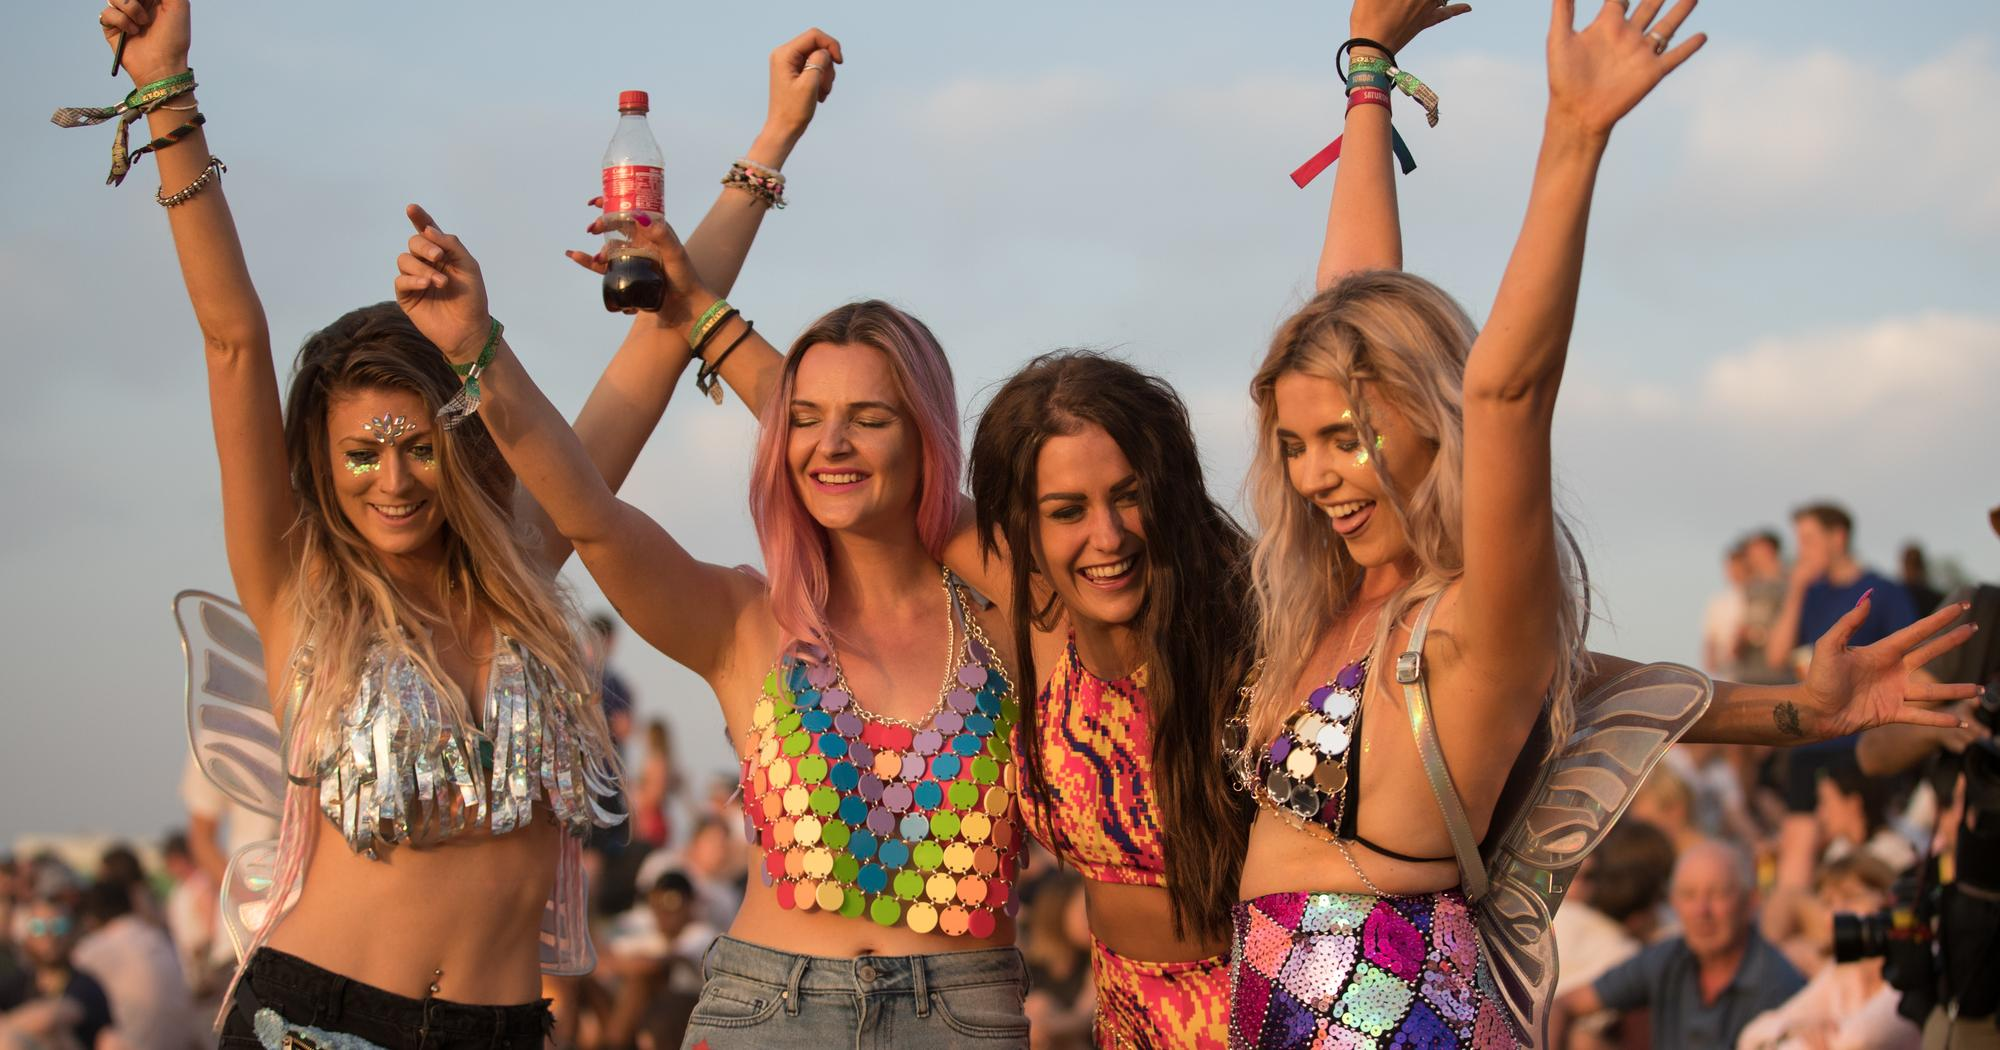 How to sneak drugs into a festival without getting caught